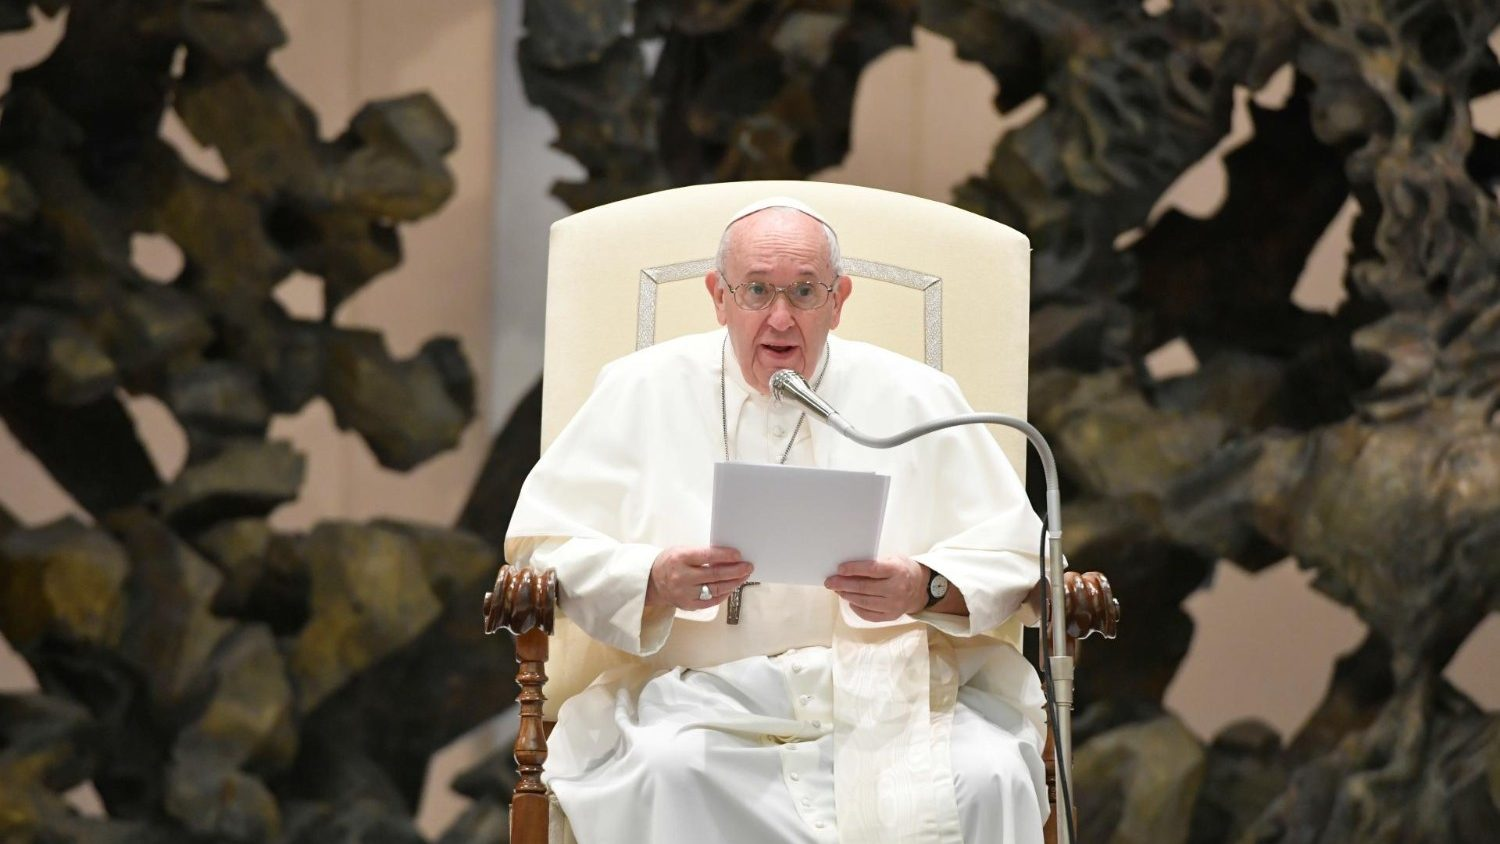 Pope at Audience: God remains near to us in suffering when we pray - Vatican News